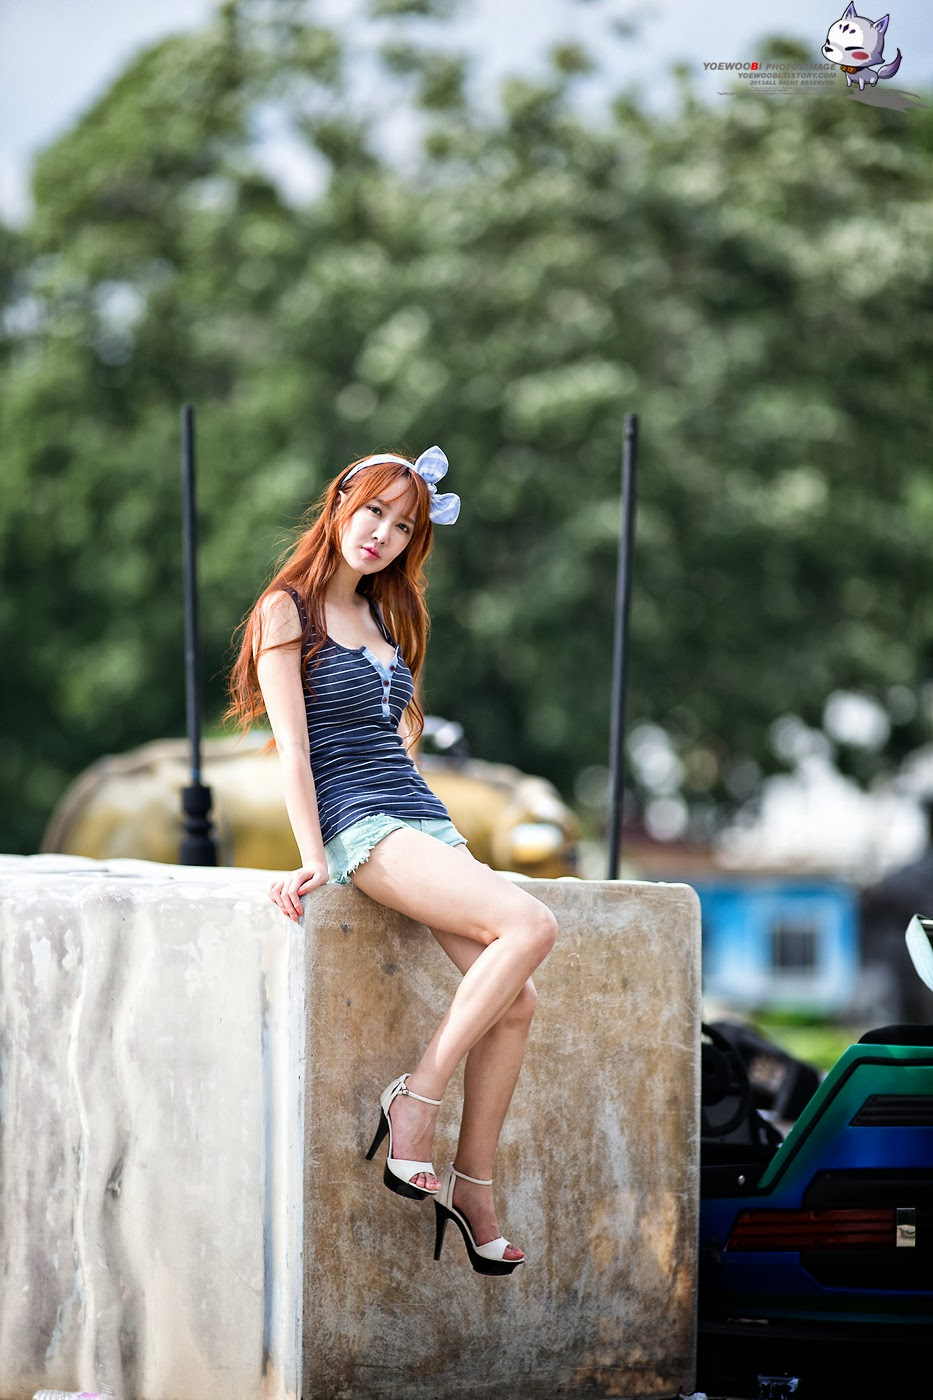 5 Yoon Seul - very cute asian girl-girlcute4u.blogspot.com